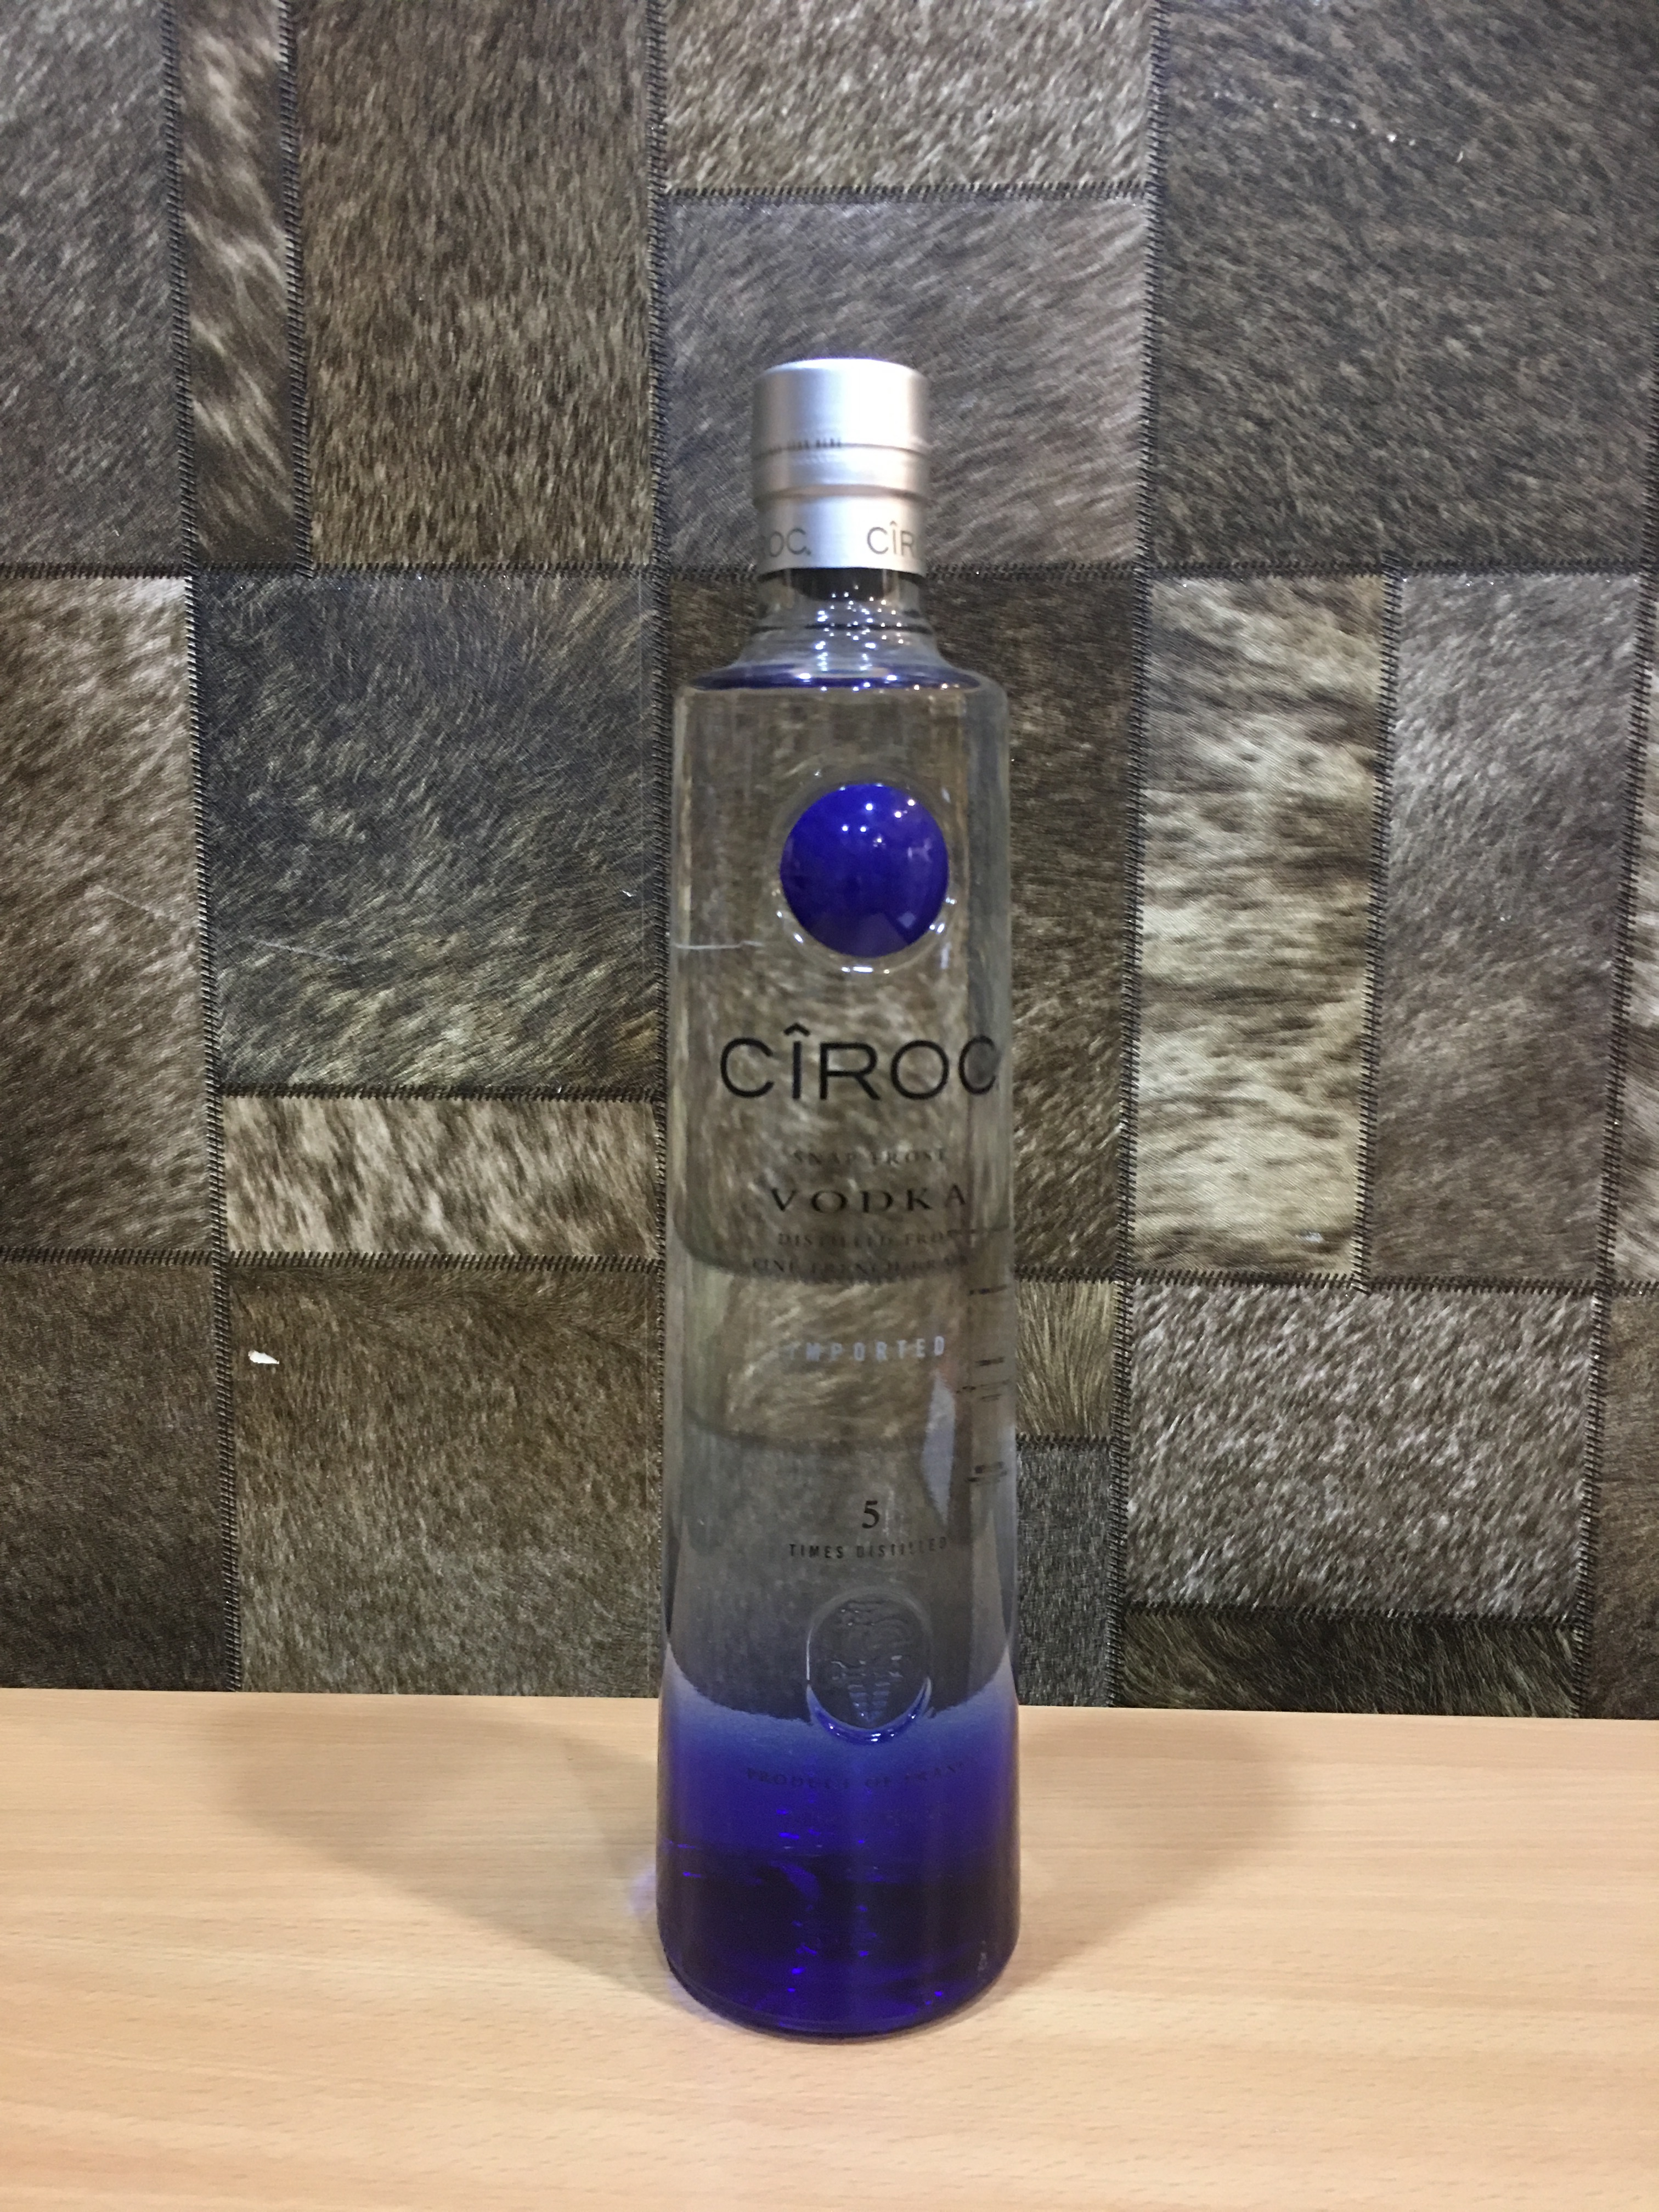 Ciroc Vodka, 70cl, Acl: 40%